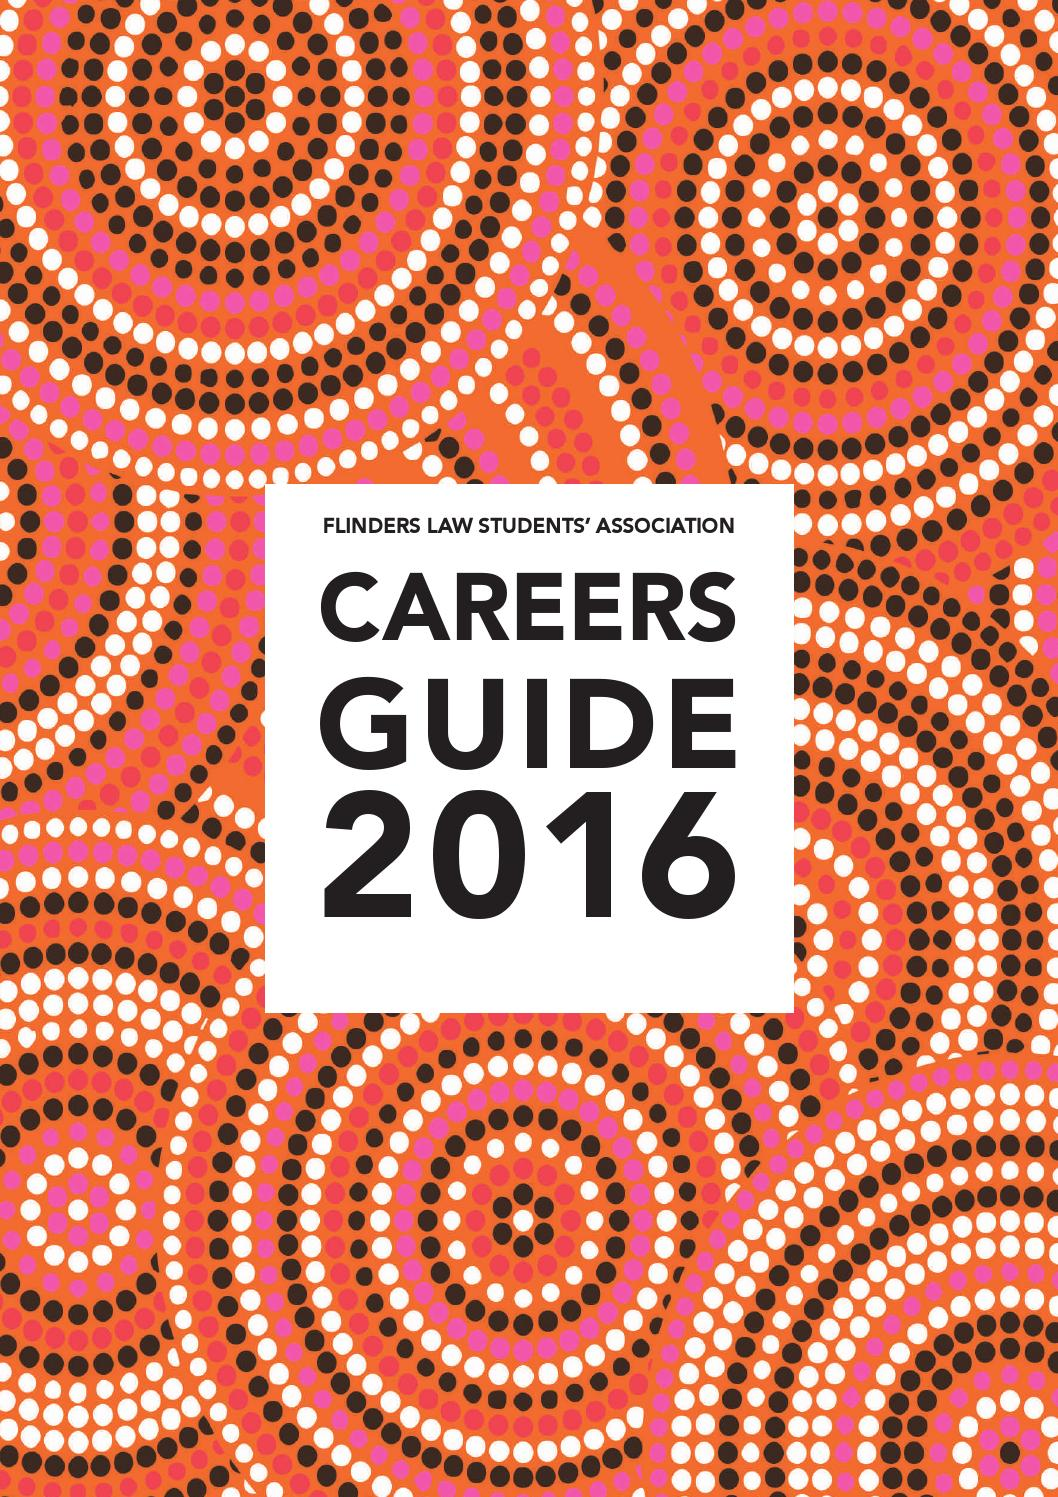 Flinders Law Students' Association Careers Guide 2016 by